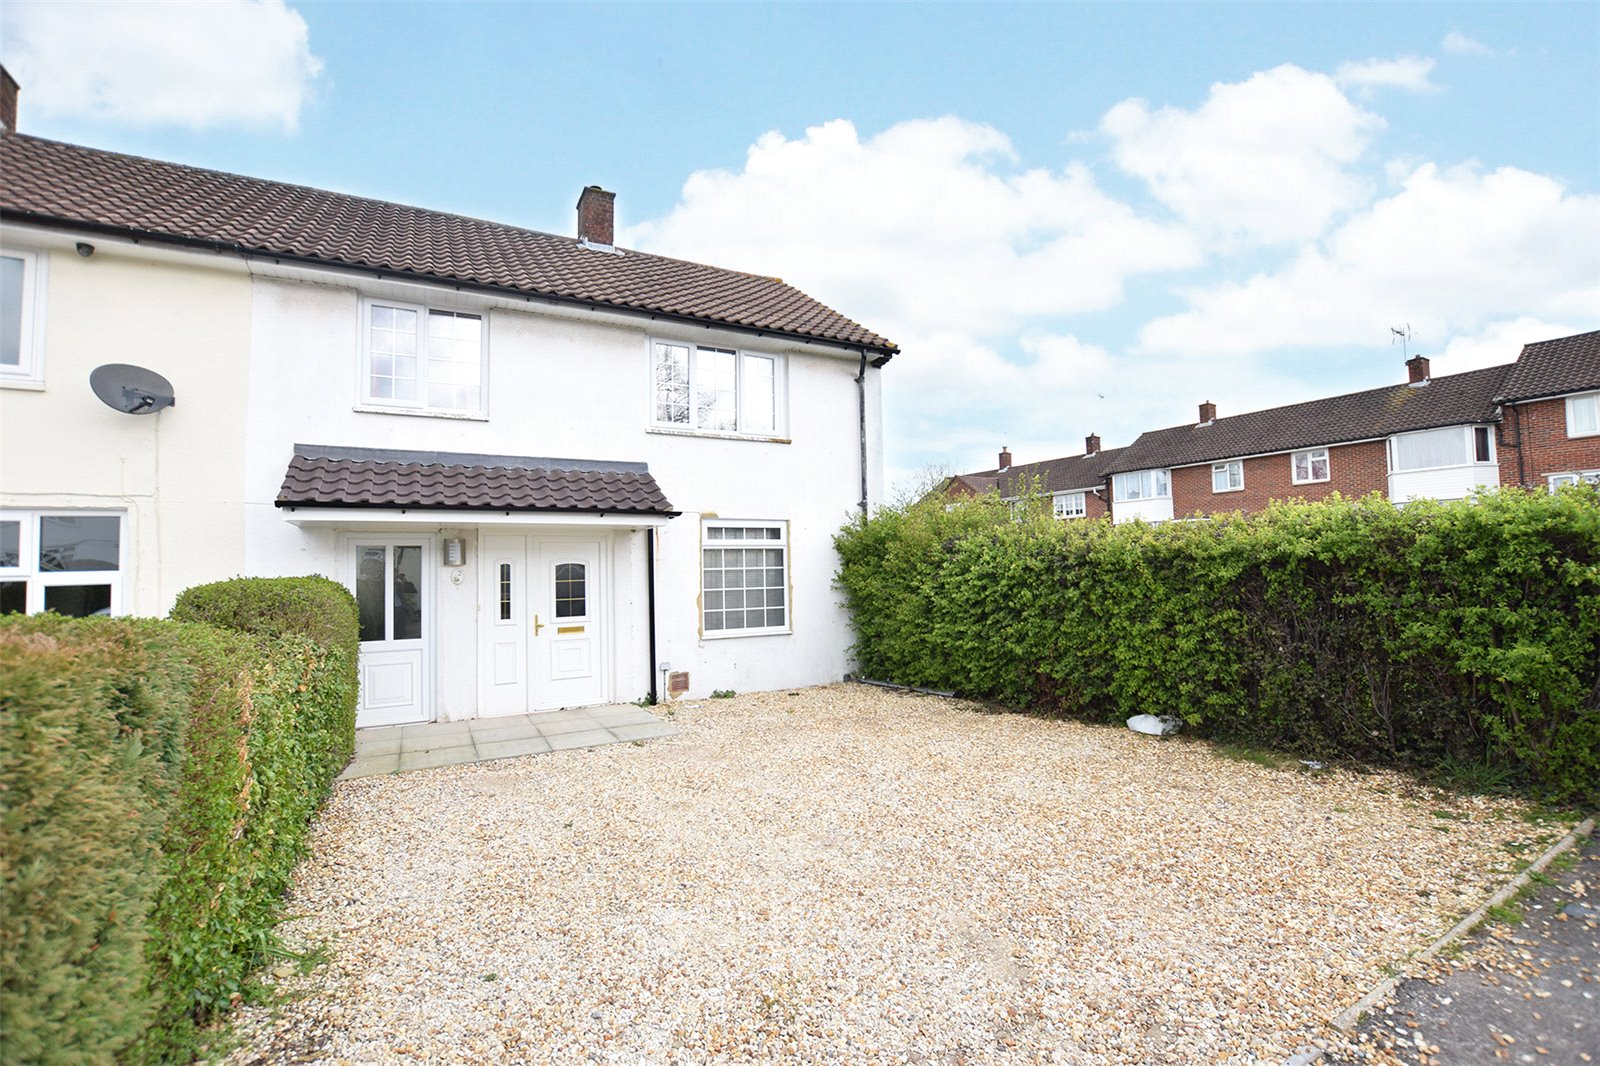 3 Bedrooms End Of Terrace House for sale in Clacy Green, Bracknell, Berkshire, RG42